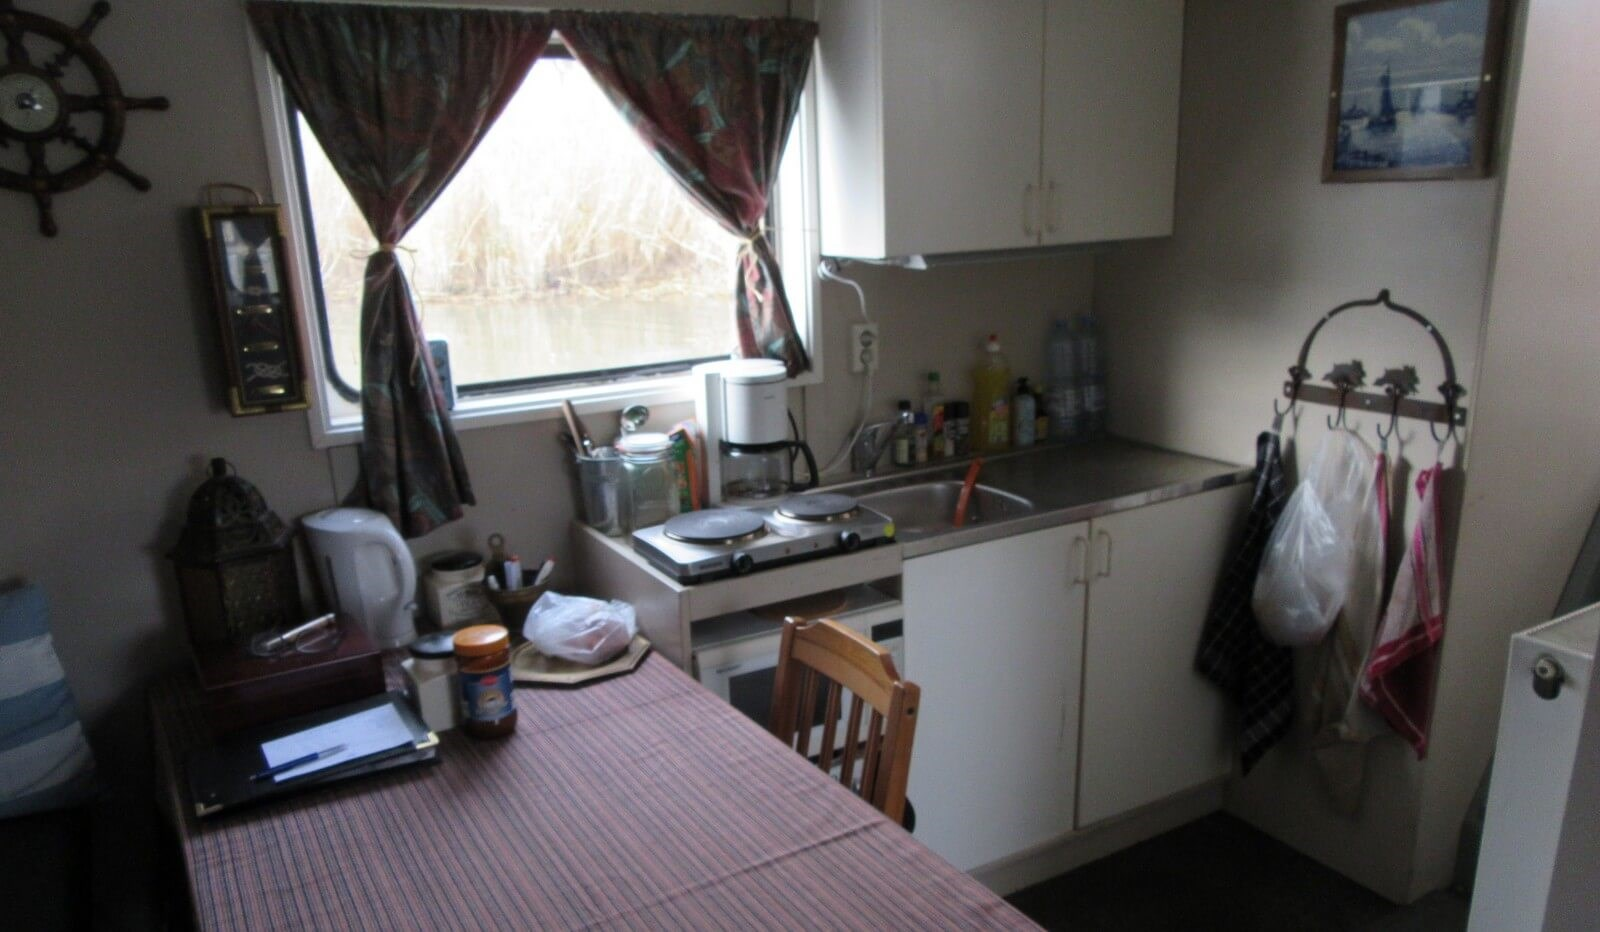 Kitchenette in day room